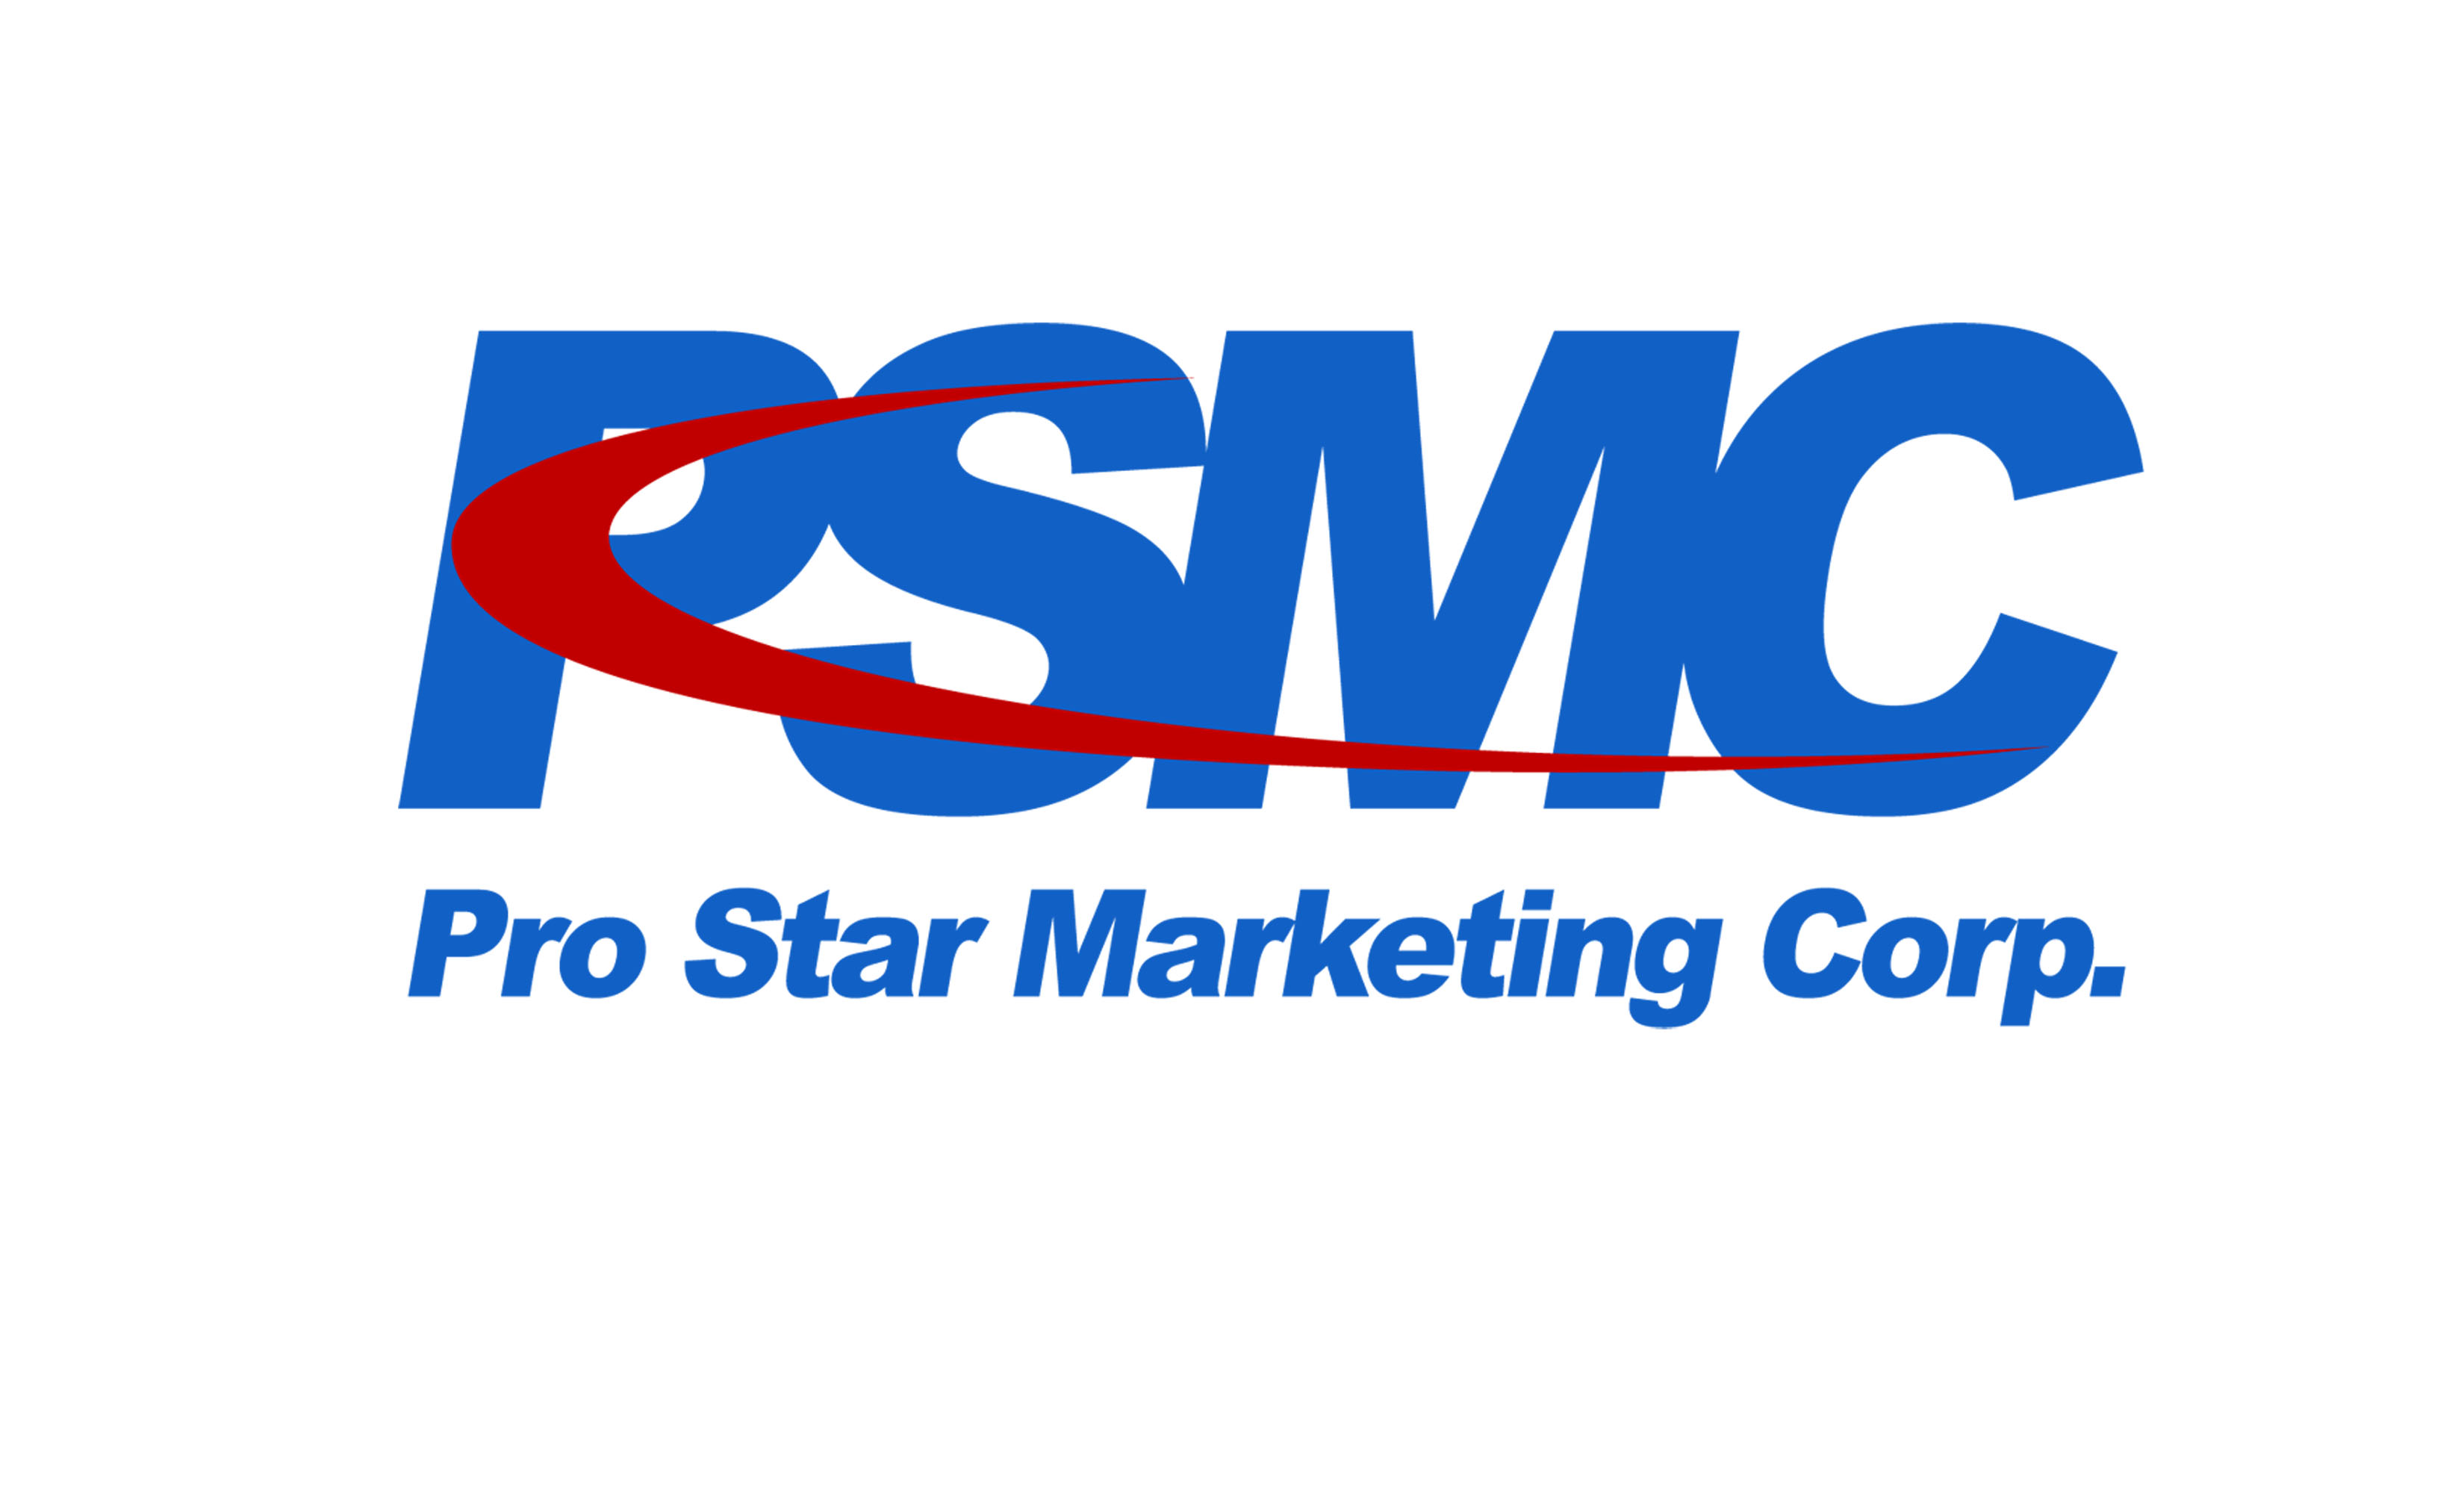 Pro Star Marketing Corp